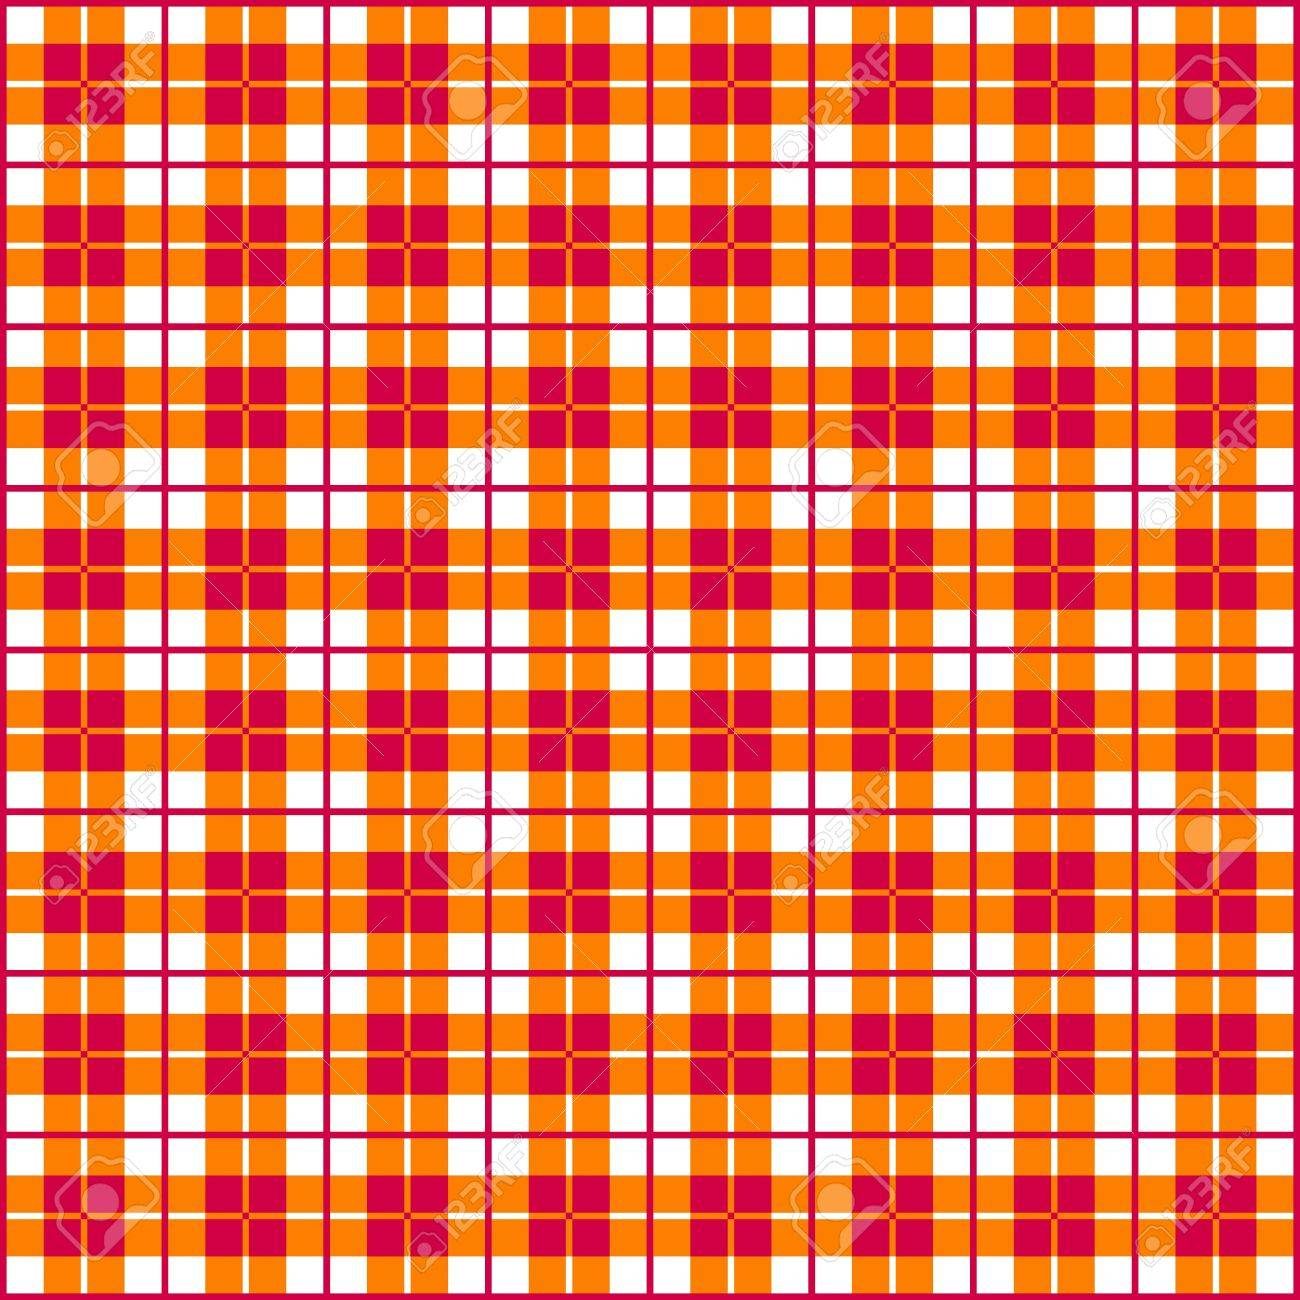 Old fashioned gingham check pattern in red   orange for scrapbooks, restaurants, fabrics, arts, crafts and decorating  Pattern swatch will seamlessly fill any shape Stock Vector - 16299110